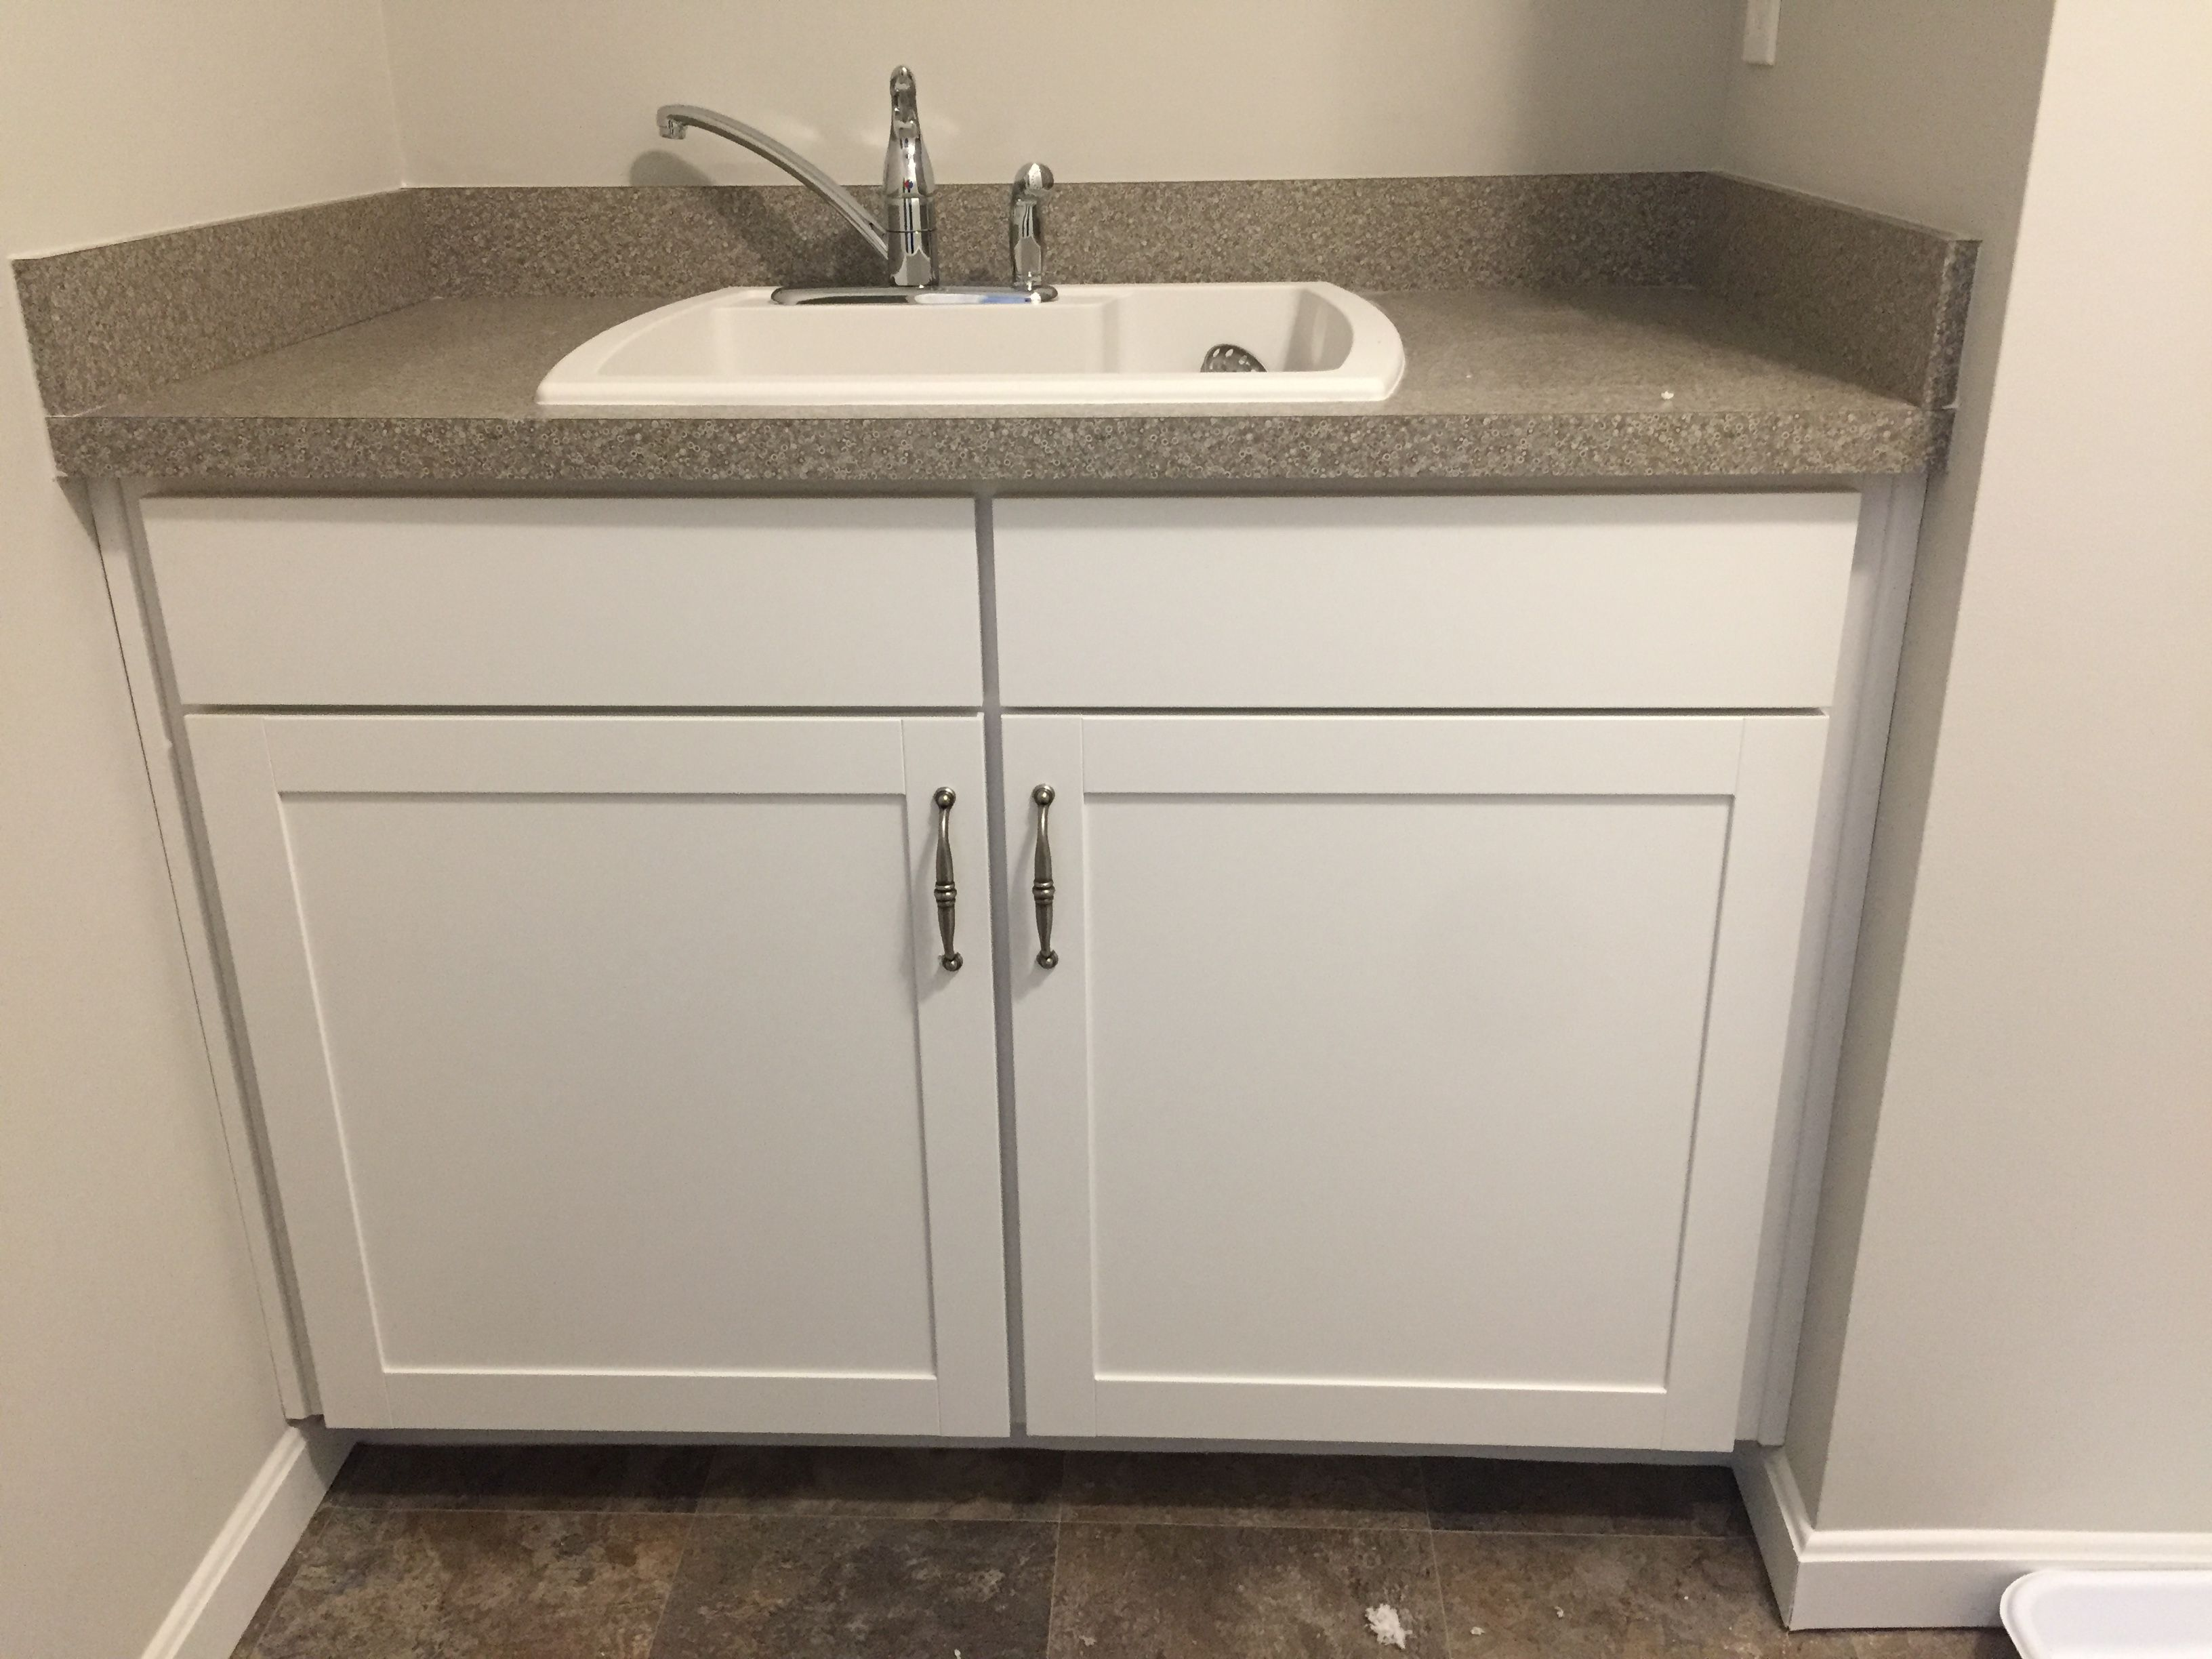 Sink Base Laundry Option Brellin White Cabinets Beluga Beige Laminate Counter Top Laminate Countertops Laminate Counter Vanity